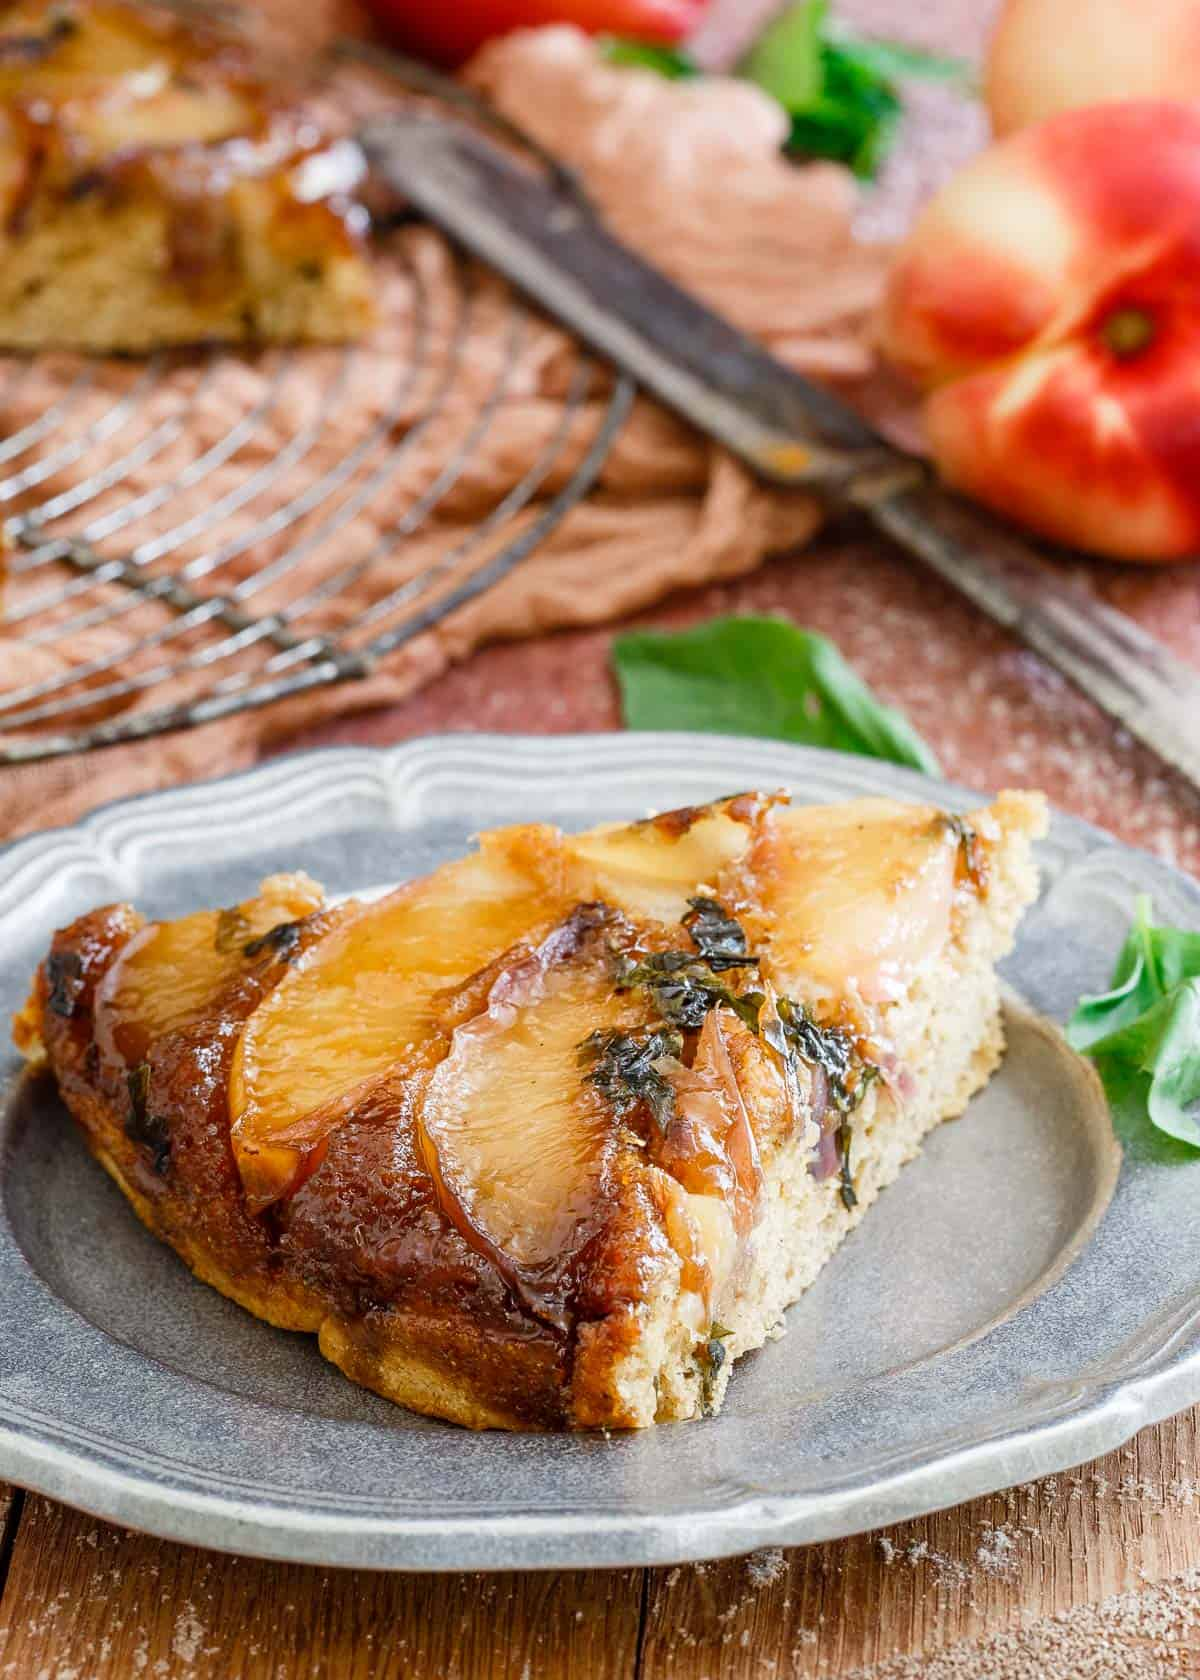 Basil Nectarine Upside Down Cake is a delicious gluten free summer treat.